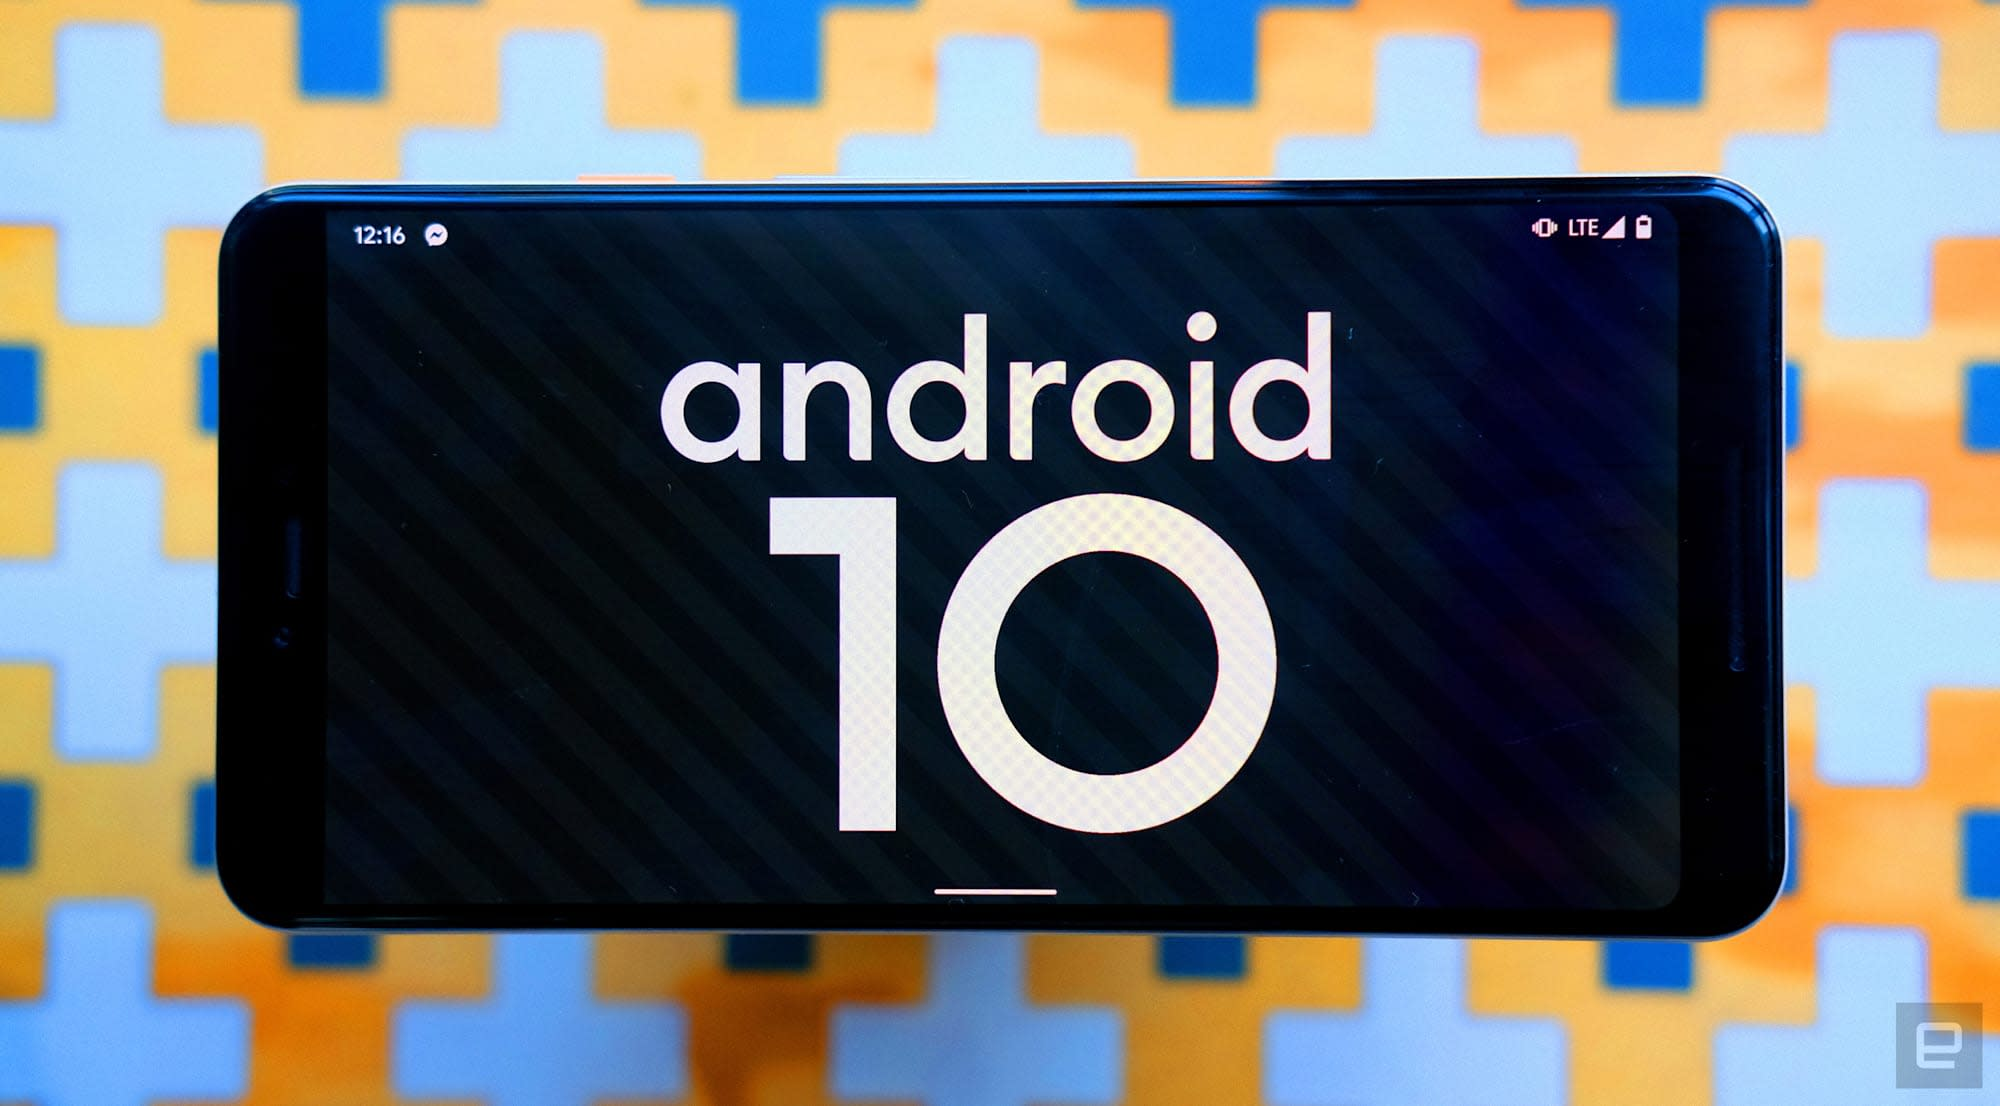 Android 10 review: Good today, better tomorrow